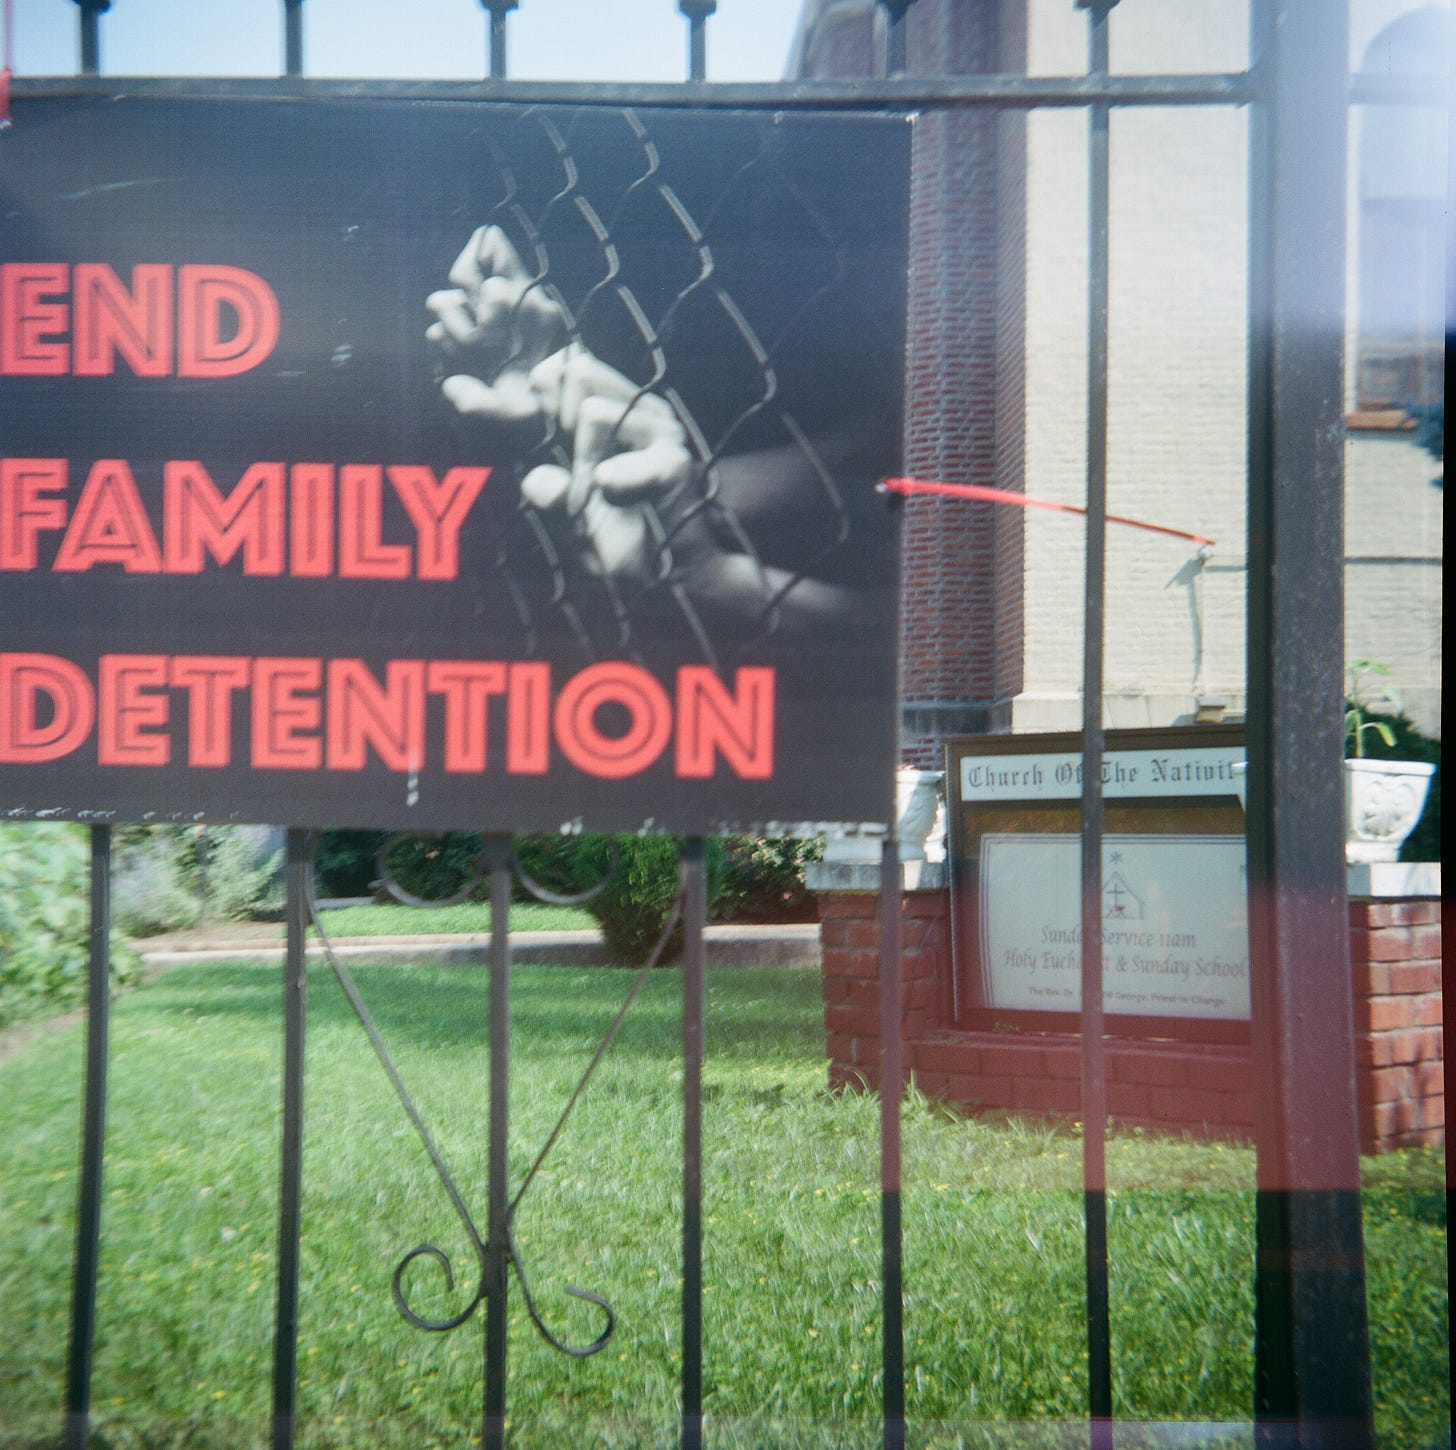 """A sign that says """"End Family Detention"""" on the fence at the Church of the Nativity in Flatbush, Brooklyn"""